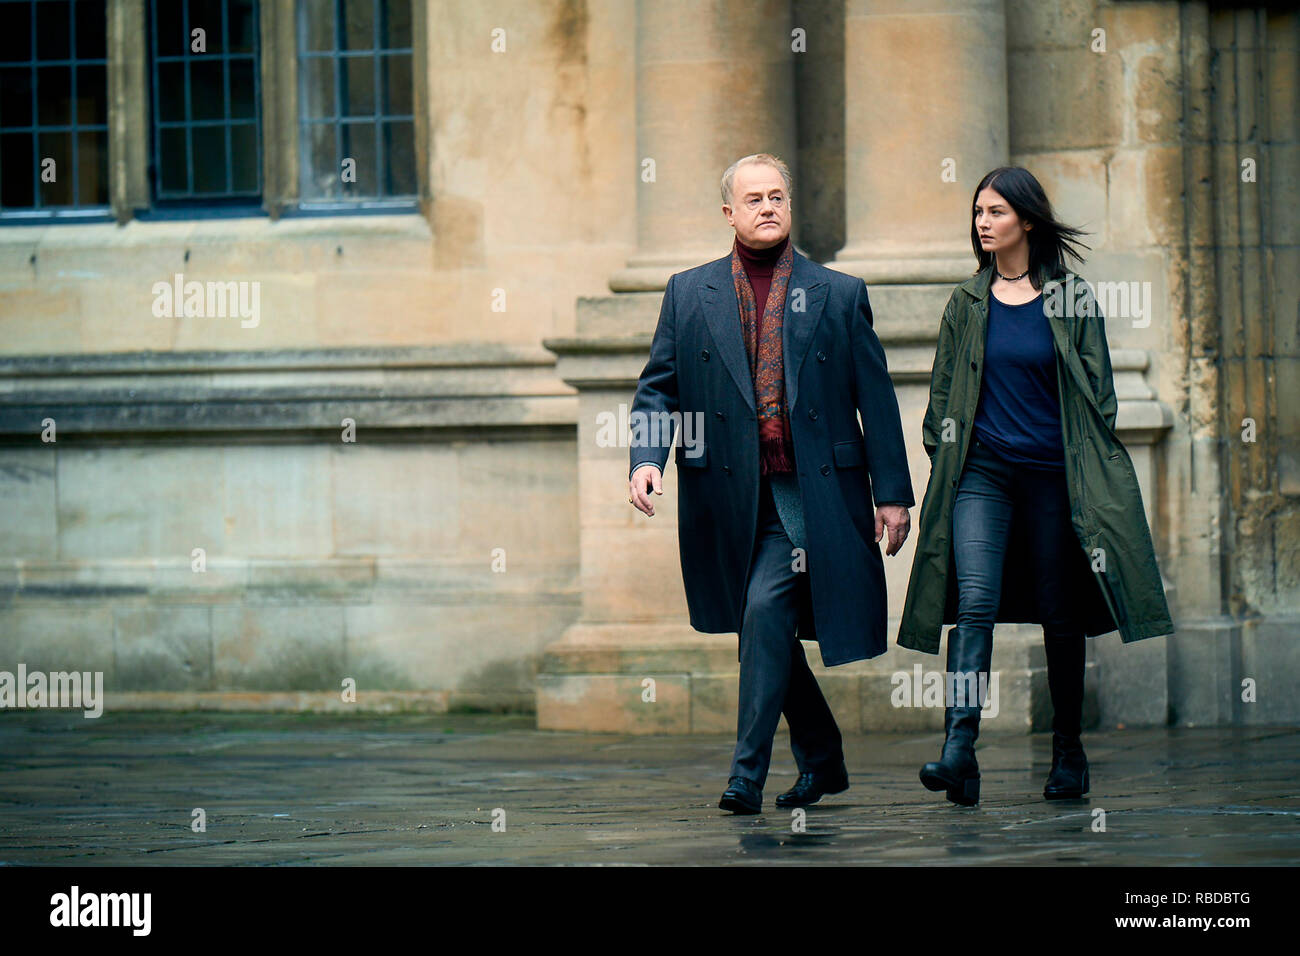 Prod DB © Sky UK Limited - Bad Wolf / DR A DISCOVERY OF WITCHES serie TV 2018- GB saison 1 episode 2 Owen Teale Malin Buska. d'apres le roman de Deborah Harkness based on the 'All Souls Trilogy' by Deborah Harkness - Stock Image